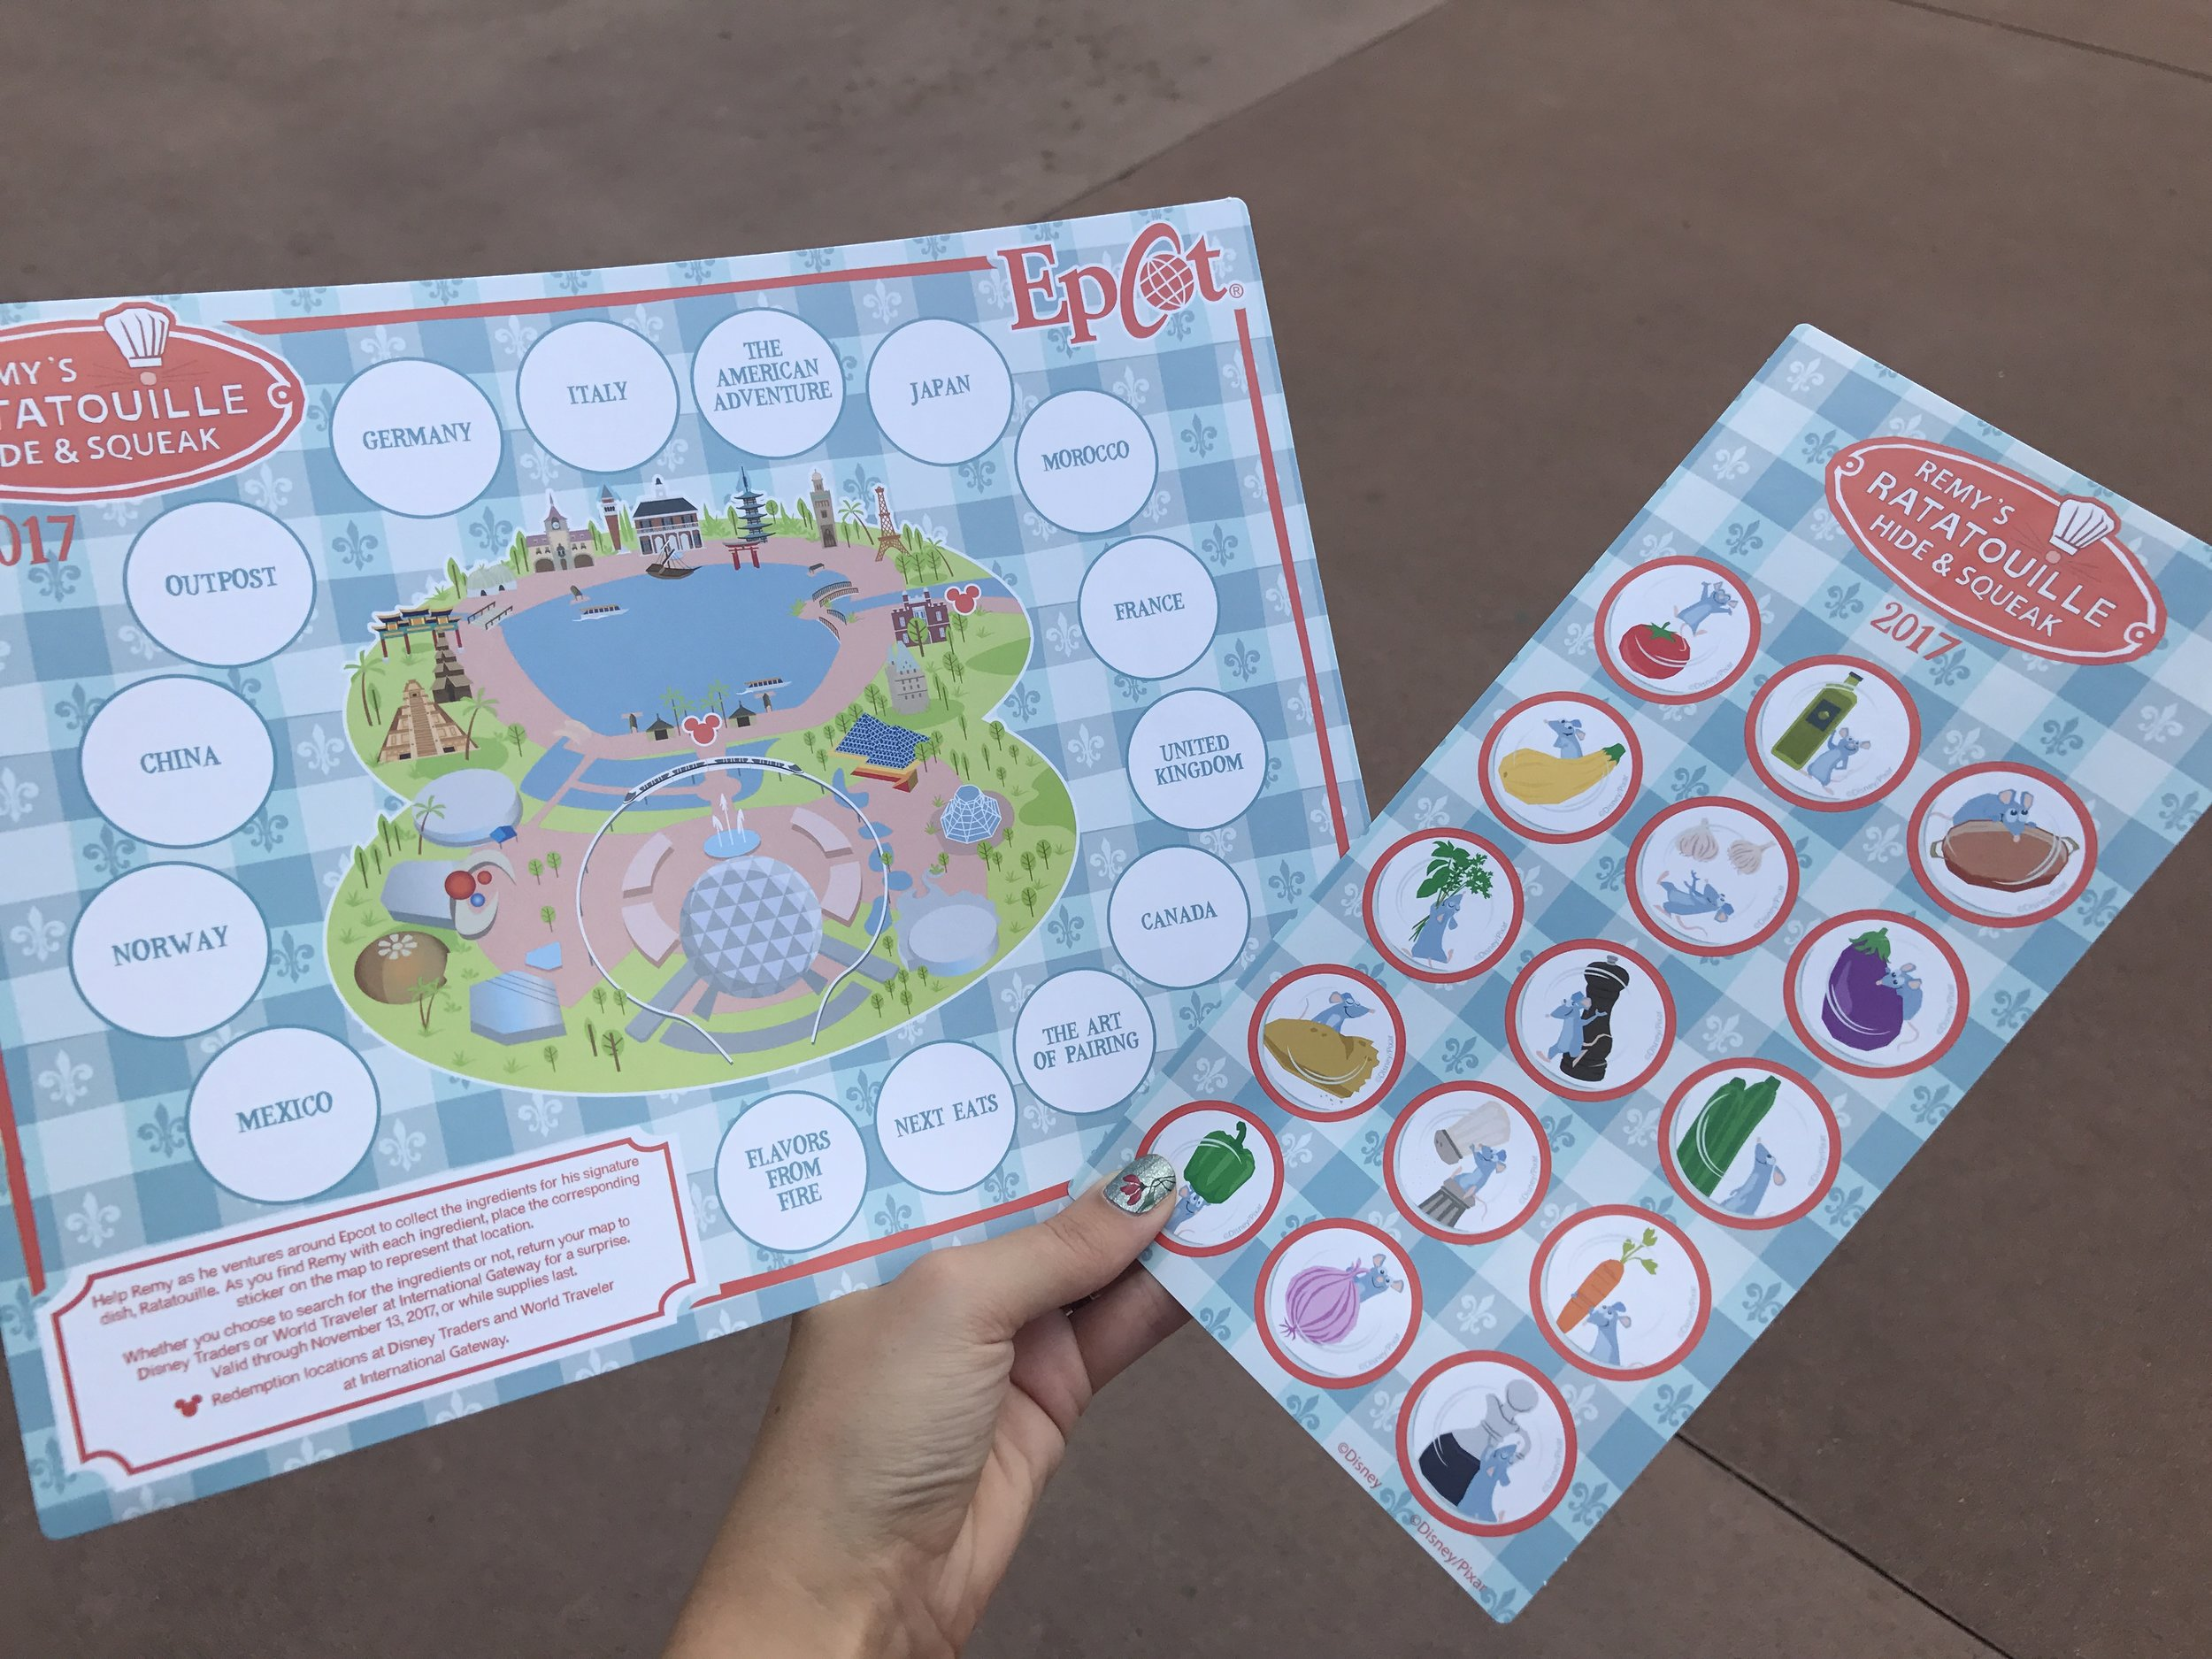 Map and Stickers for Remy's Ratatouille Hide & Squeak